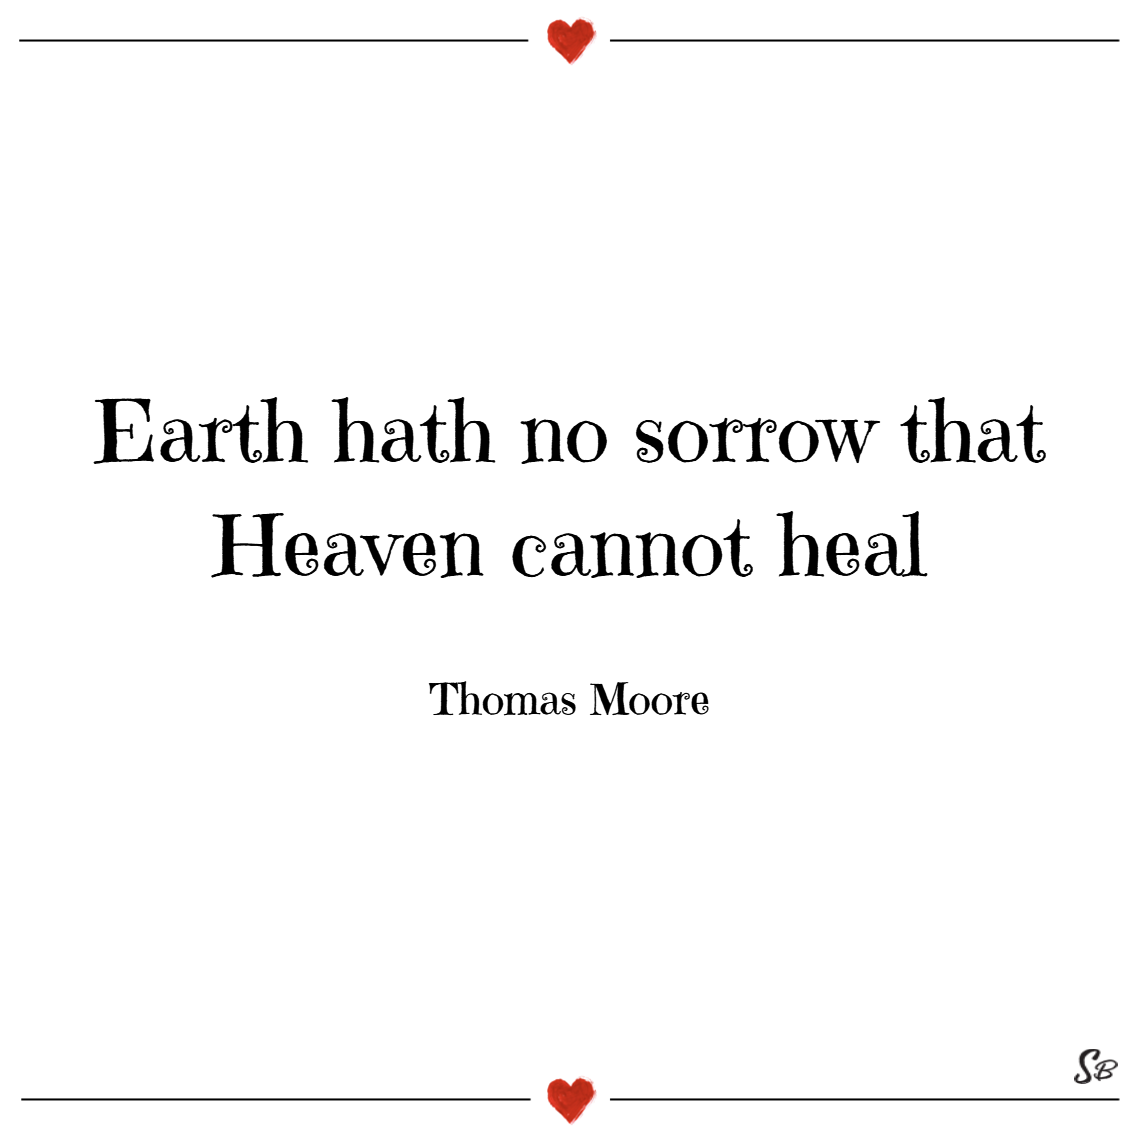 Earth hath no sorrow that heaven cannot heal. – thomas moore